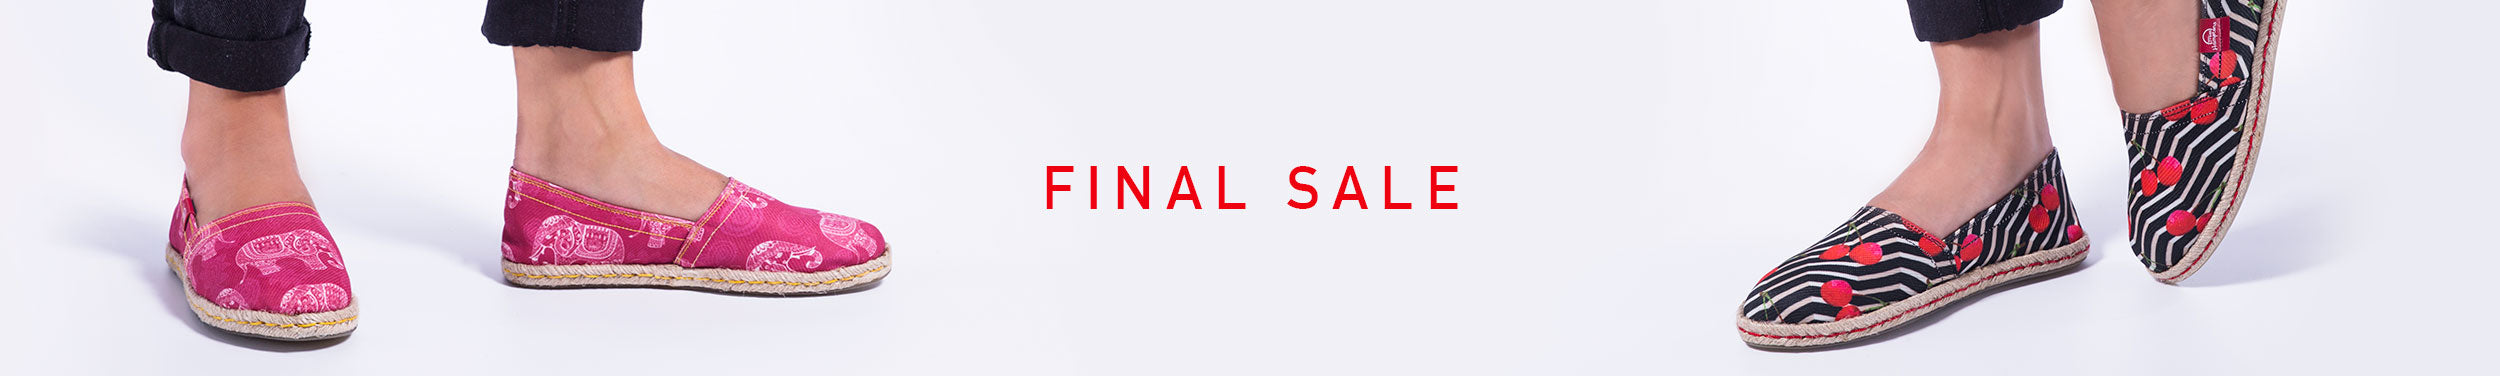 Espadrilles Final Sales